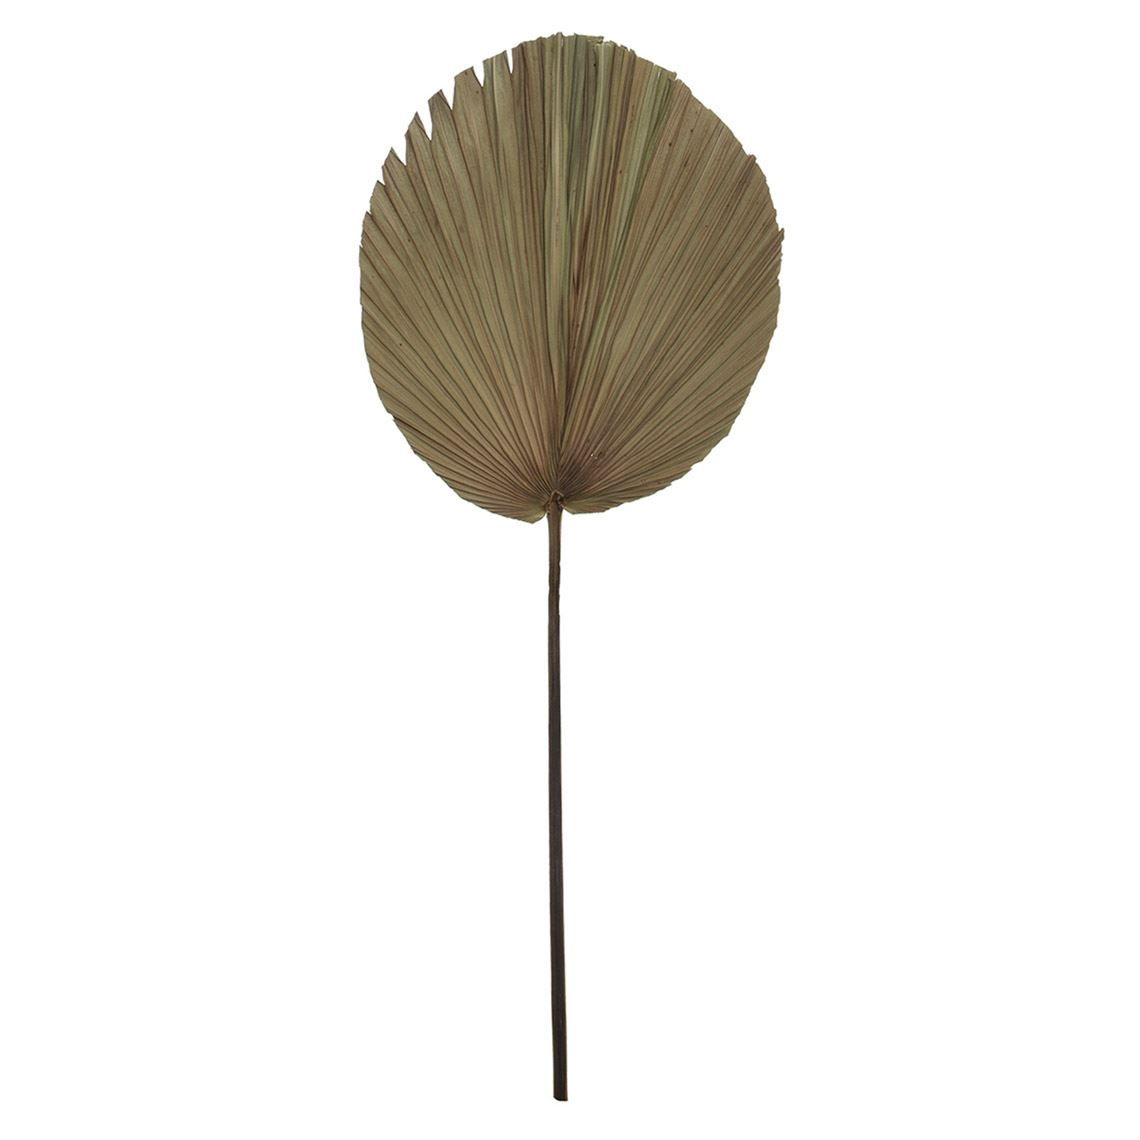 Dried Cut Fan Palm Stem Large Natural (Q) by Freedom by Freedom, a Plants for sale on Style Sourcebook